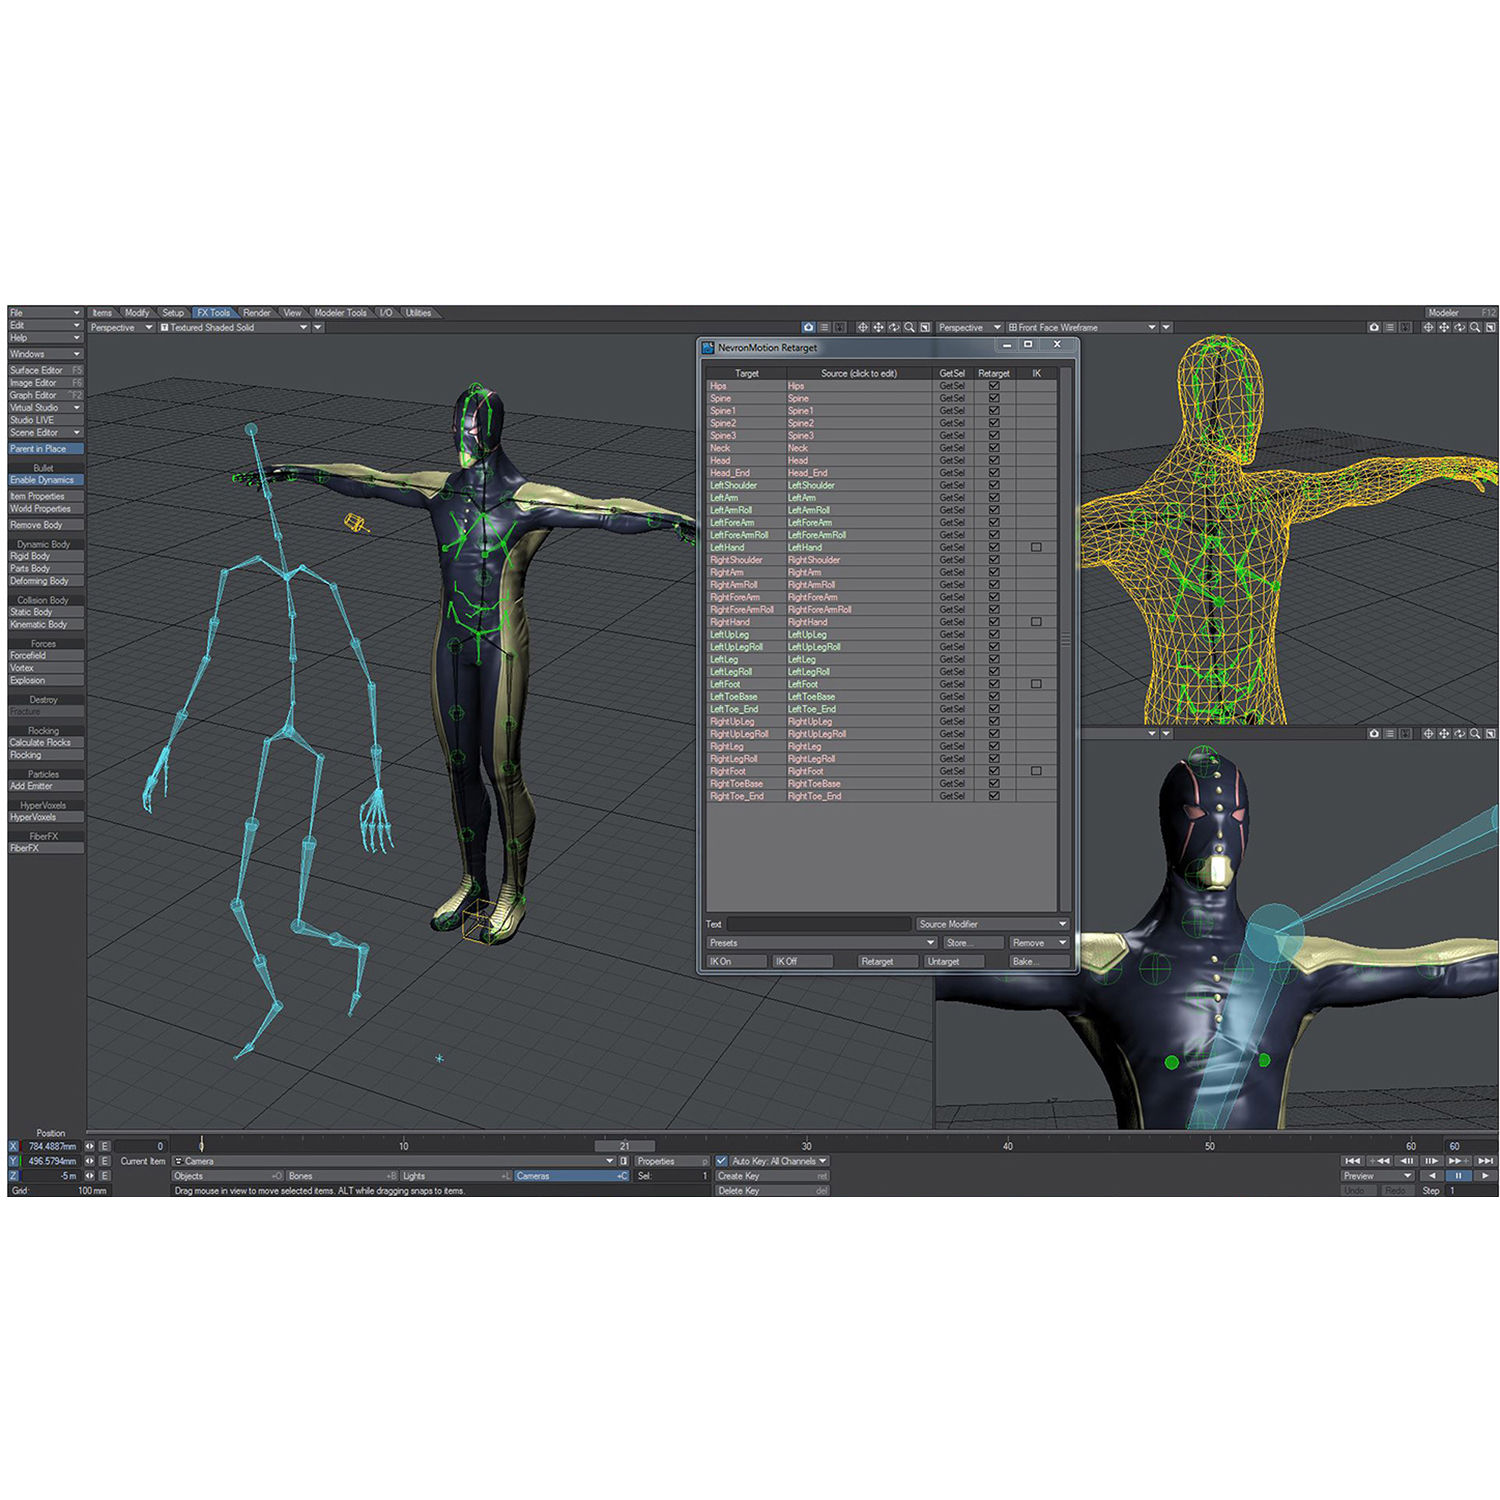 LightWave NevronMotion 1 0 Software with Kinect Support (Standard Edition,  Download)